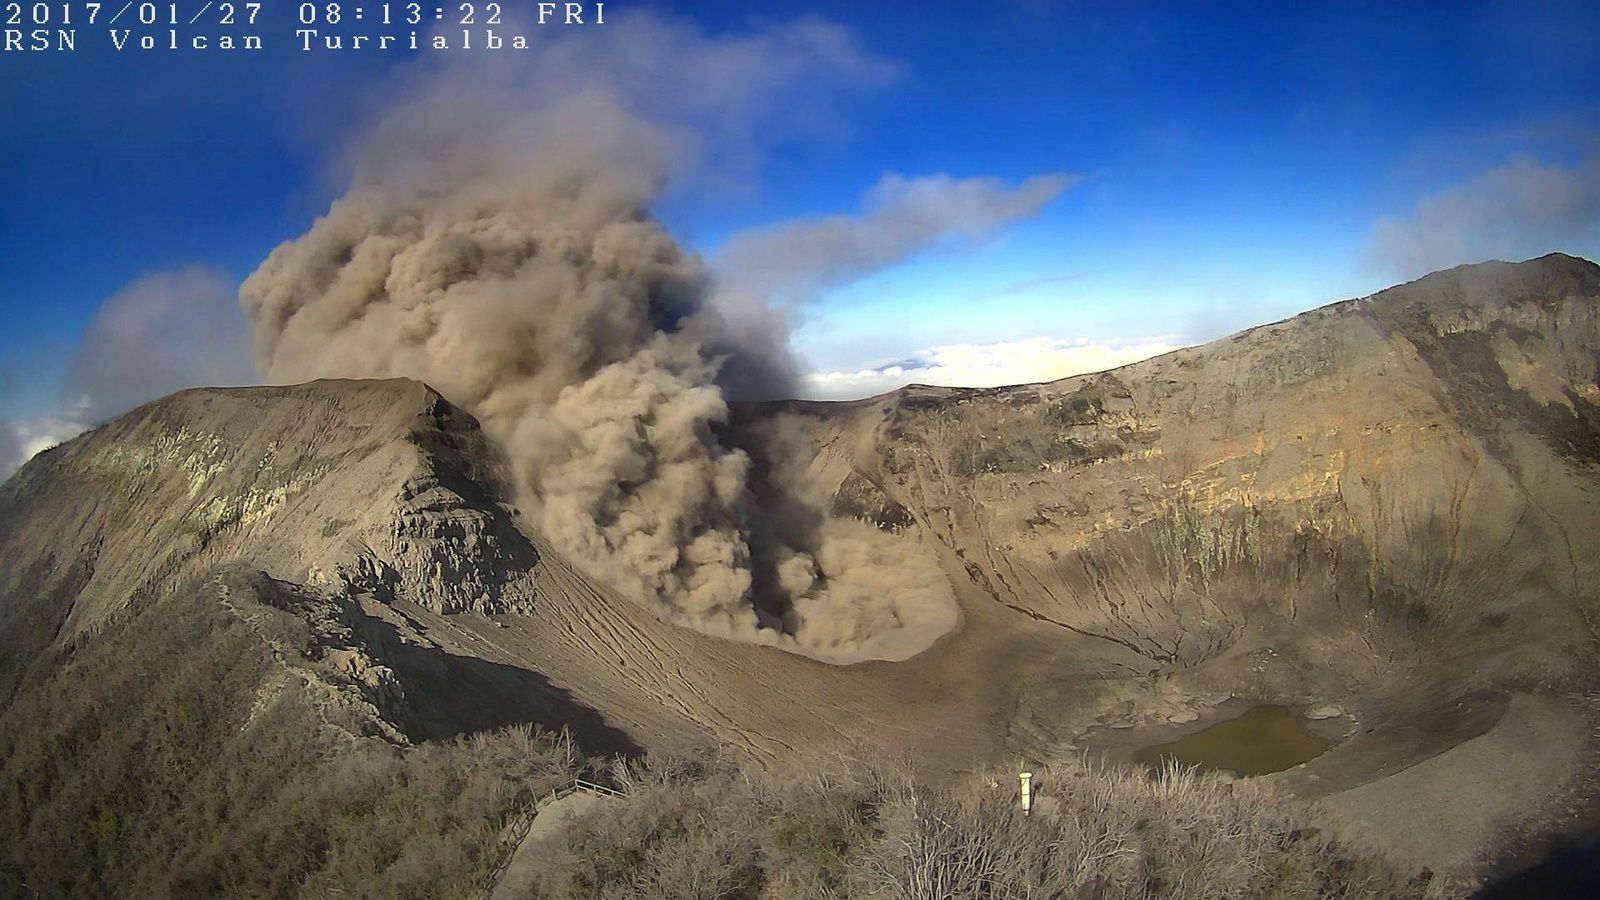 Turrialba - 27.01.2017 / 8h13 - webcam sommet RSN